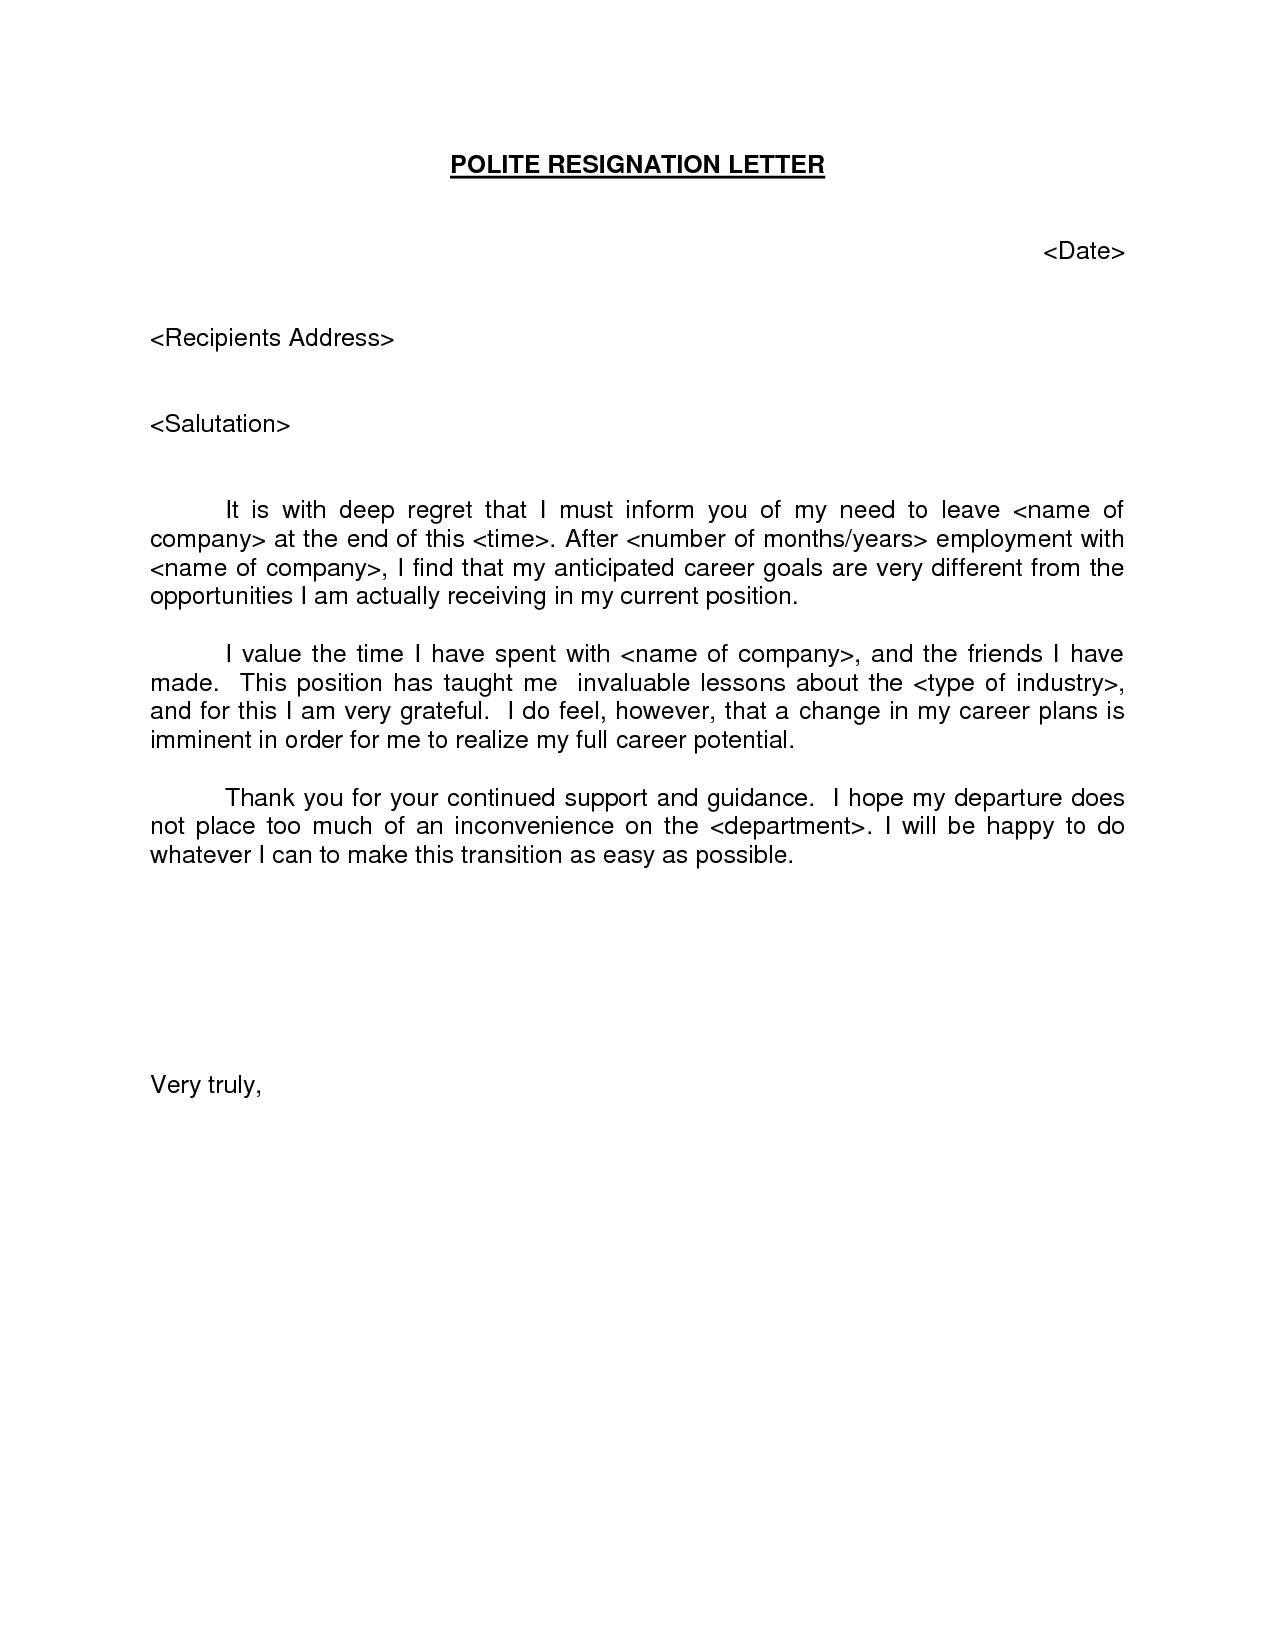 Letter to soldiers Template - Polite Resignation Letter Bestdealformoneywriting A Letter